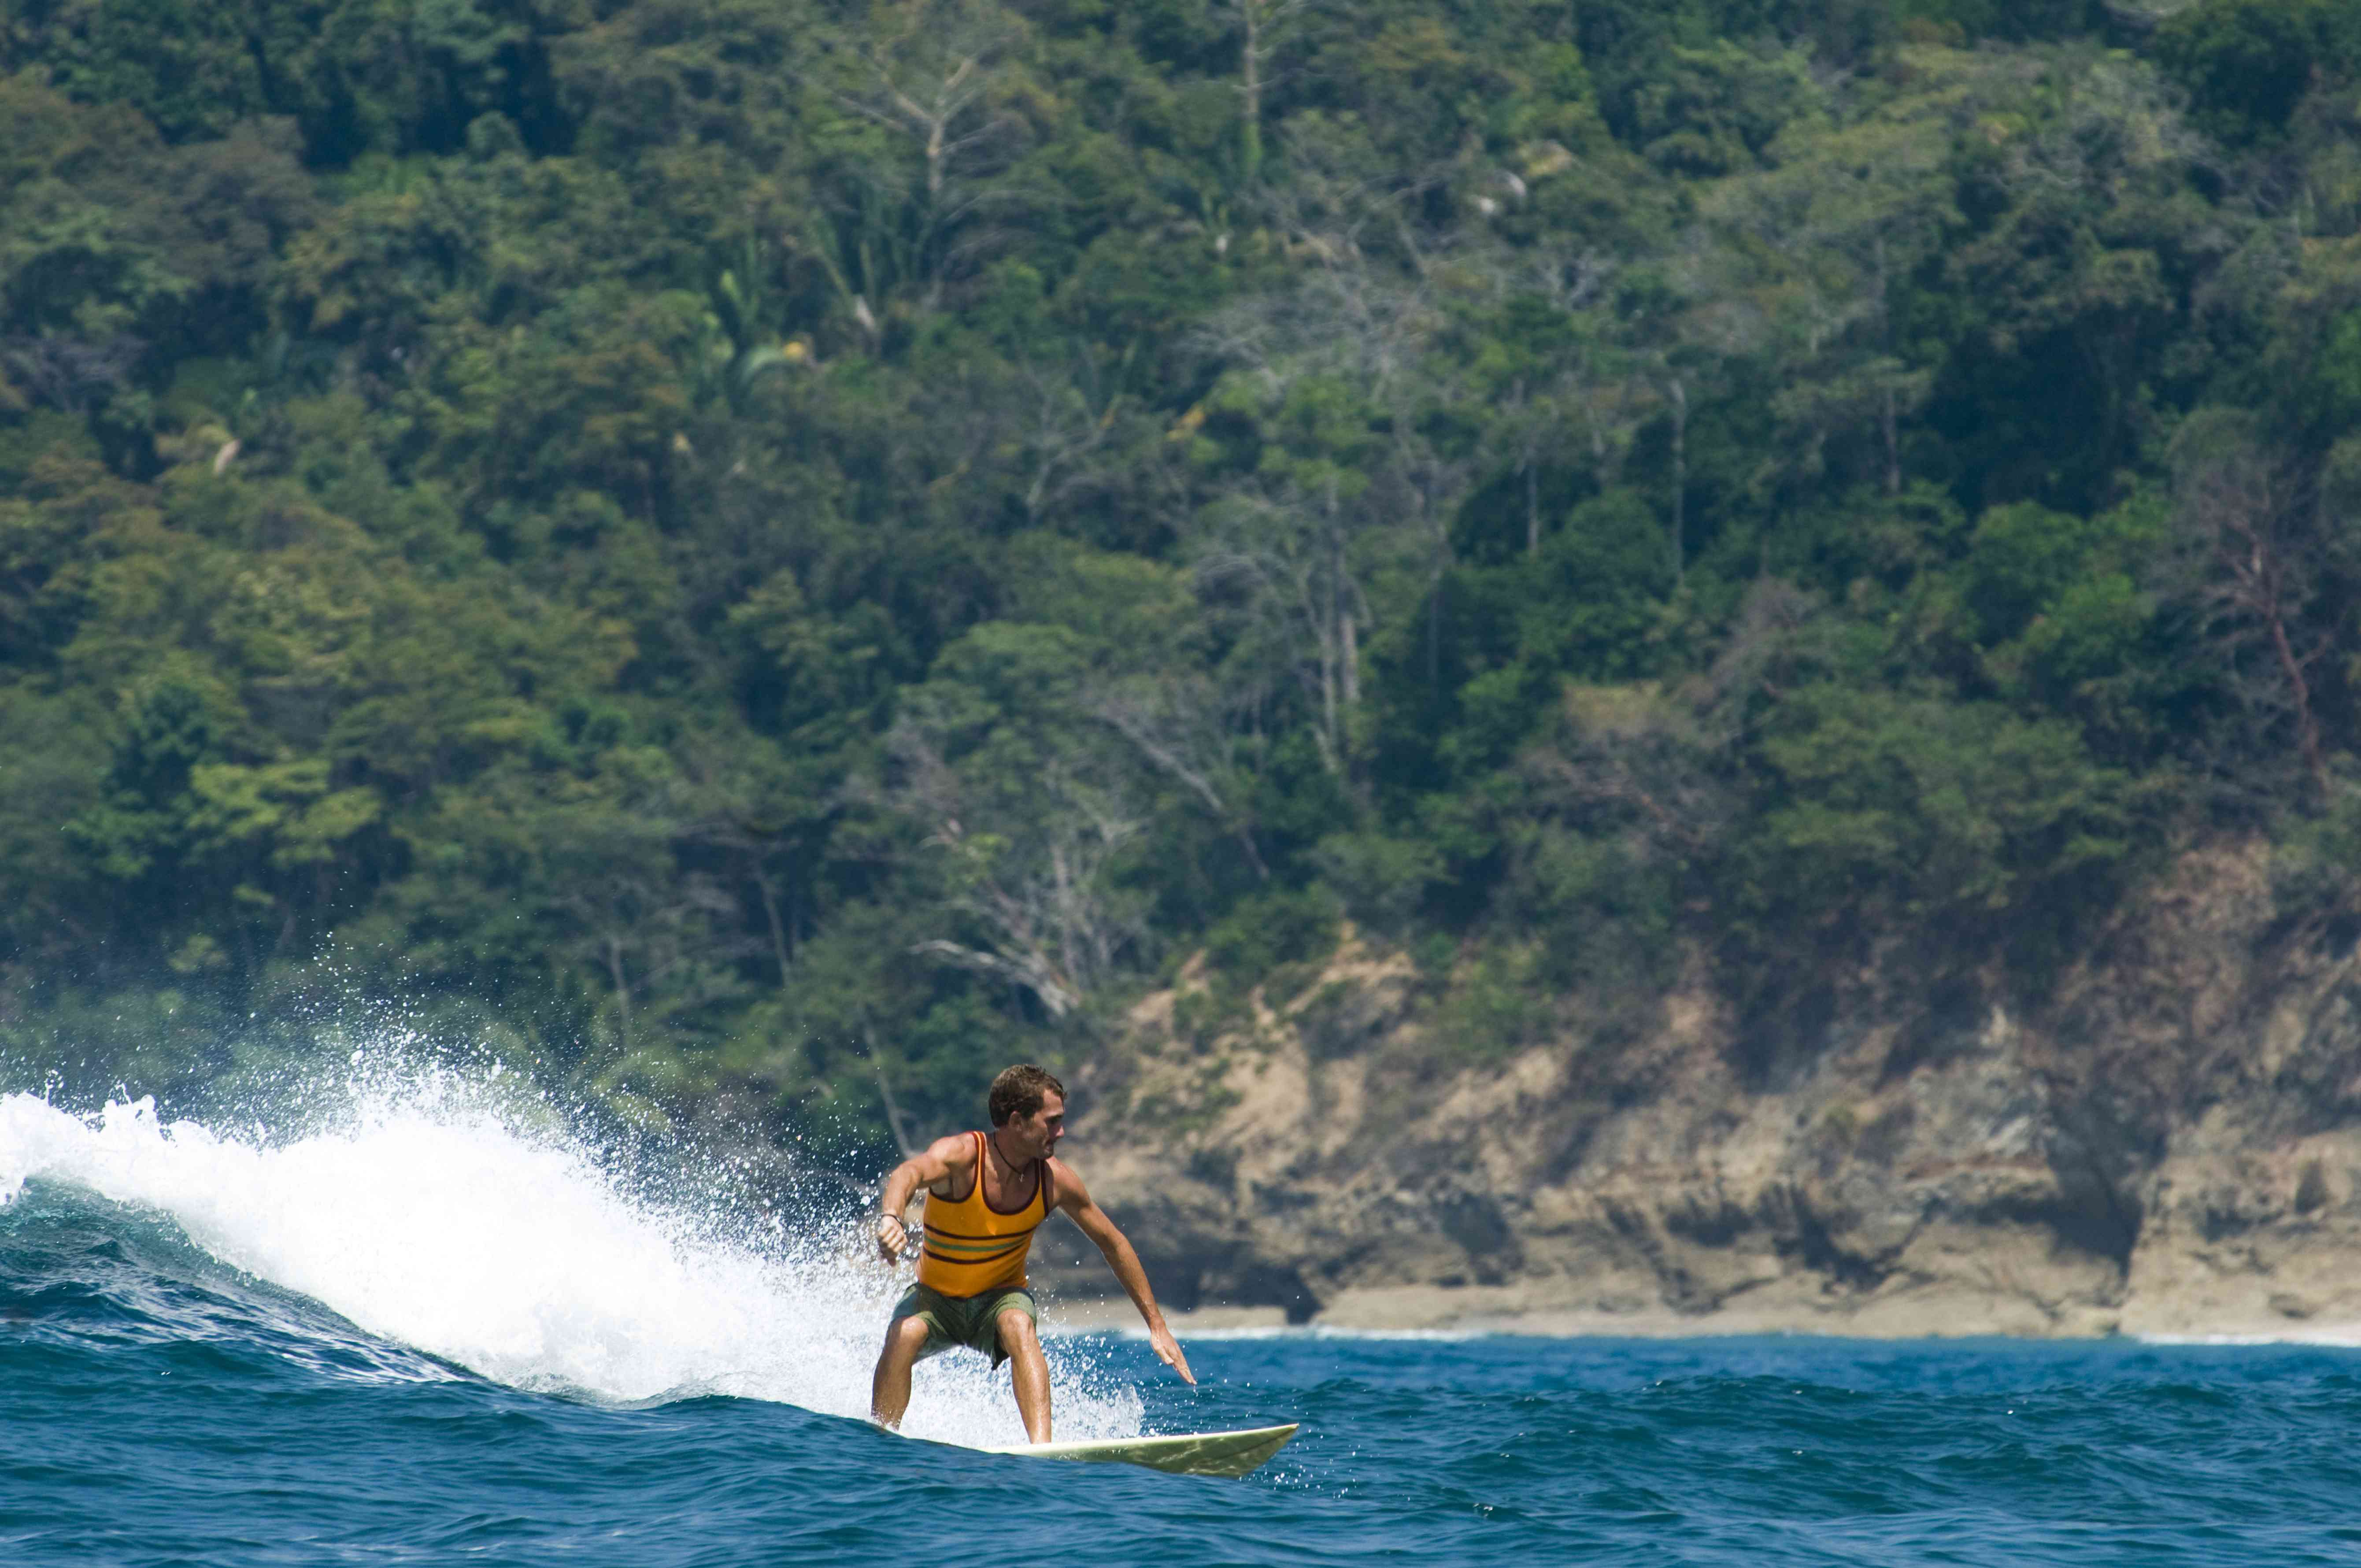 A young man surfing in Costa Rica